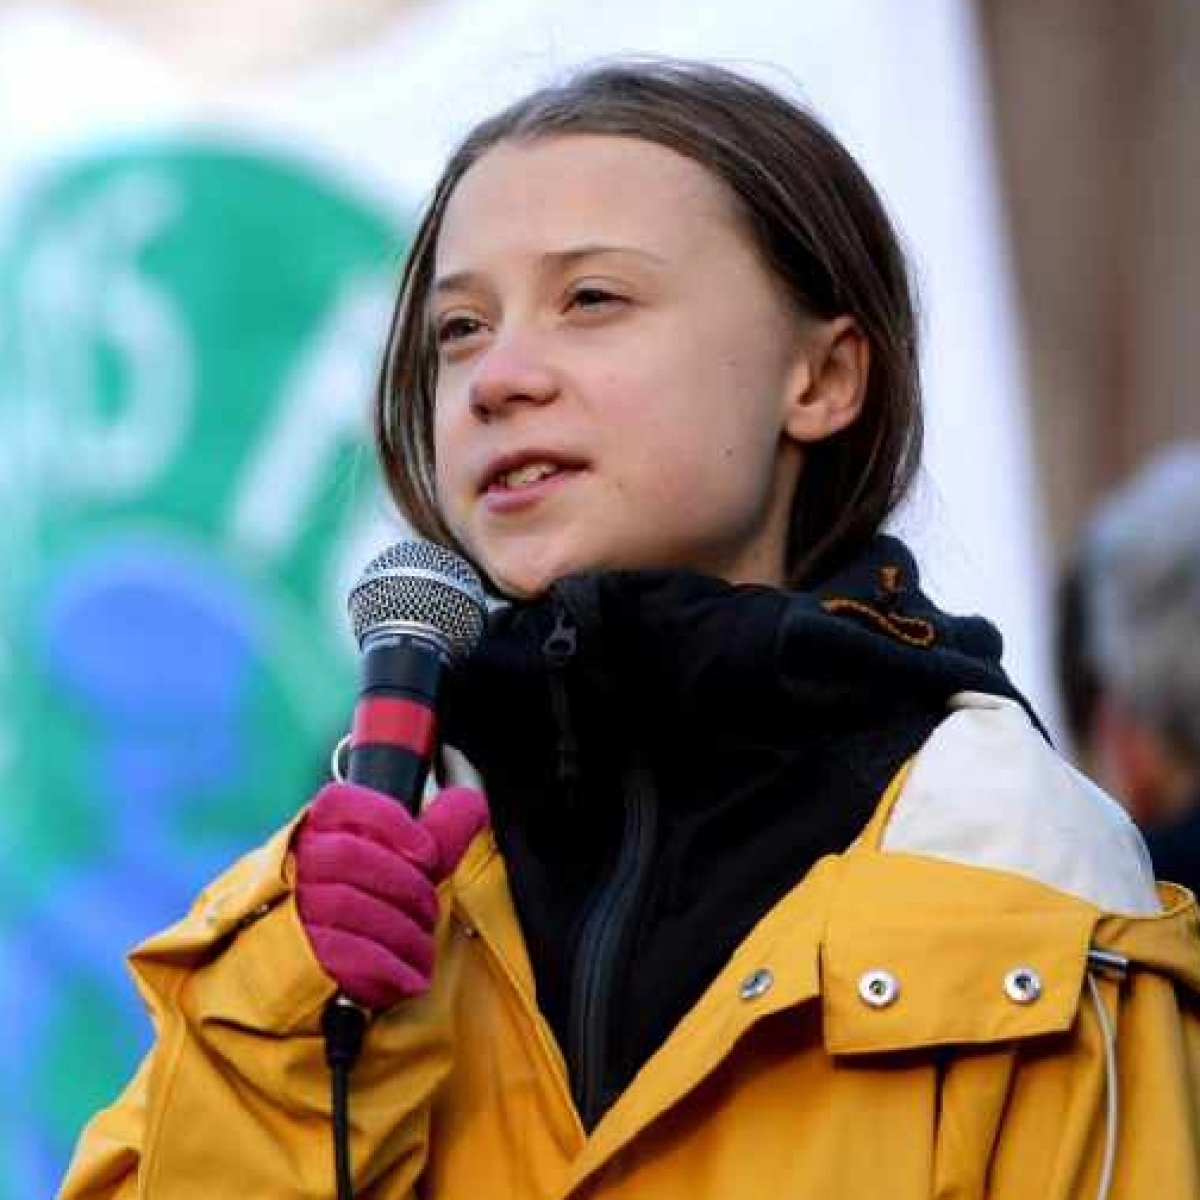 'It all comes down to democracy...': Here's what Greta Thunberg said about backlash to her tweets supporting farmers' protest